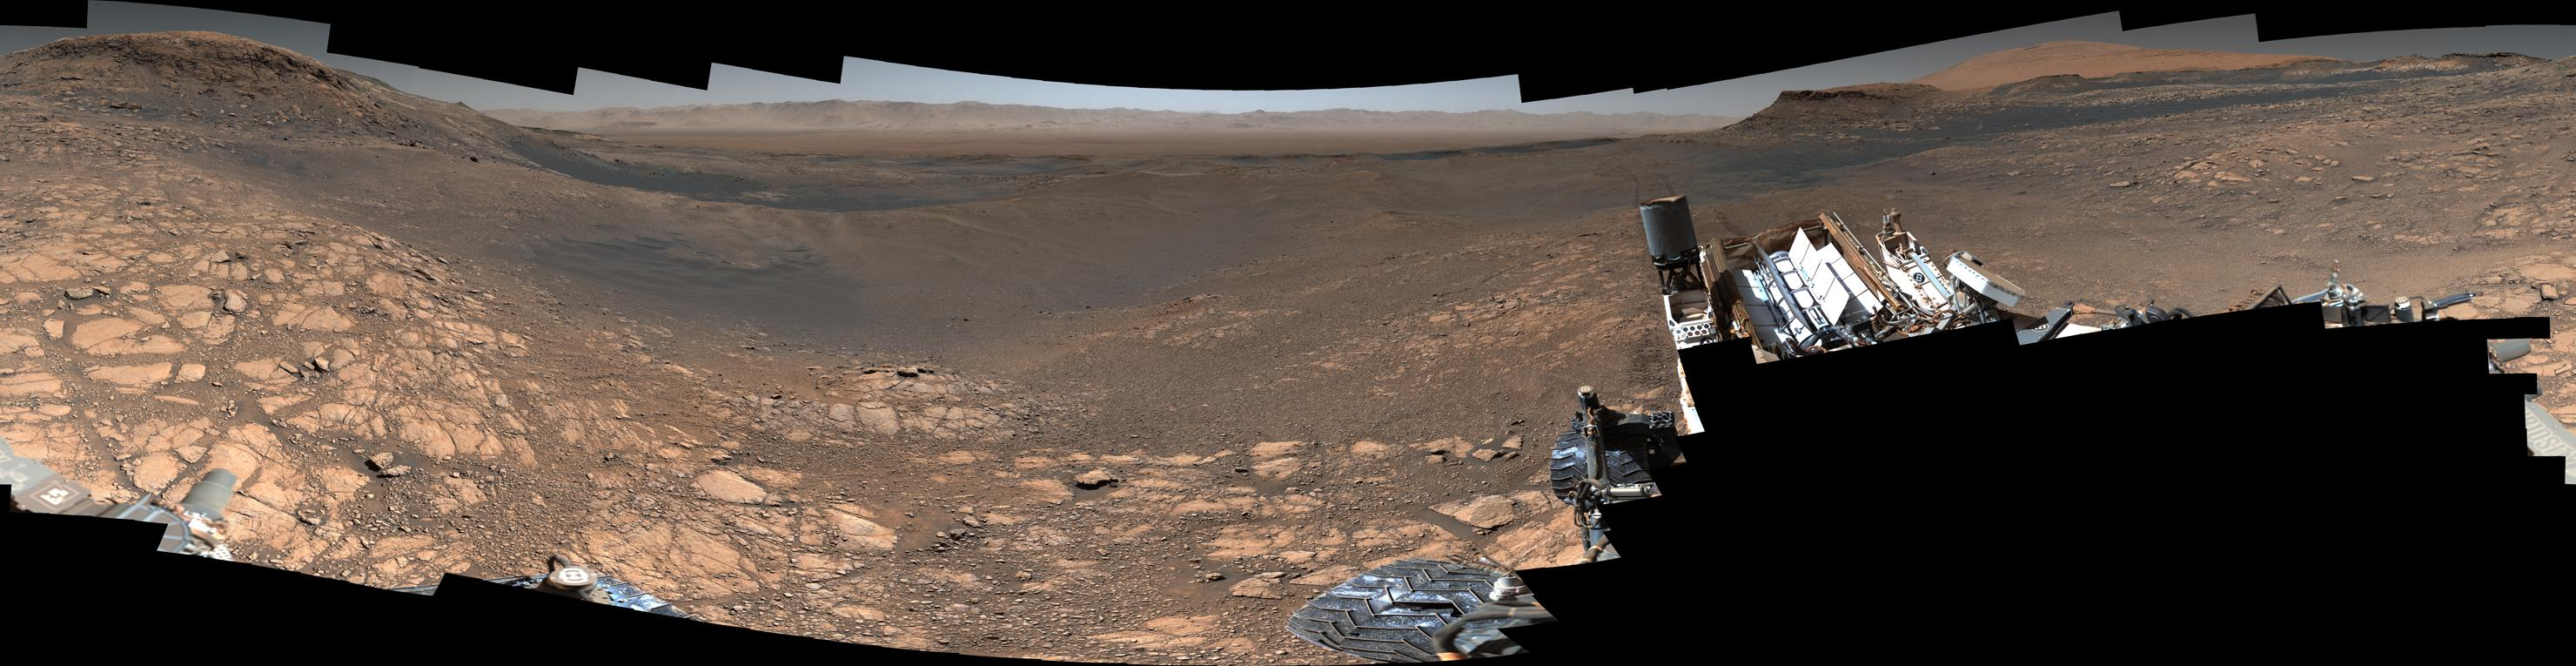 2020-5-march-curiosity-photo.jpg